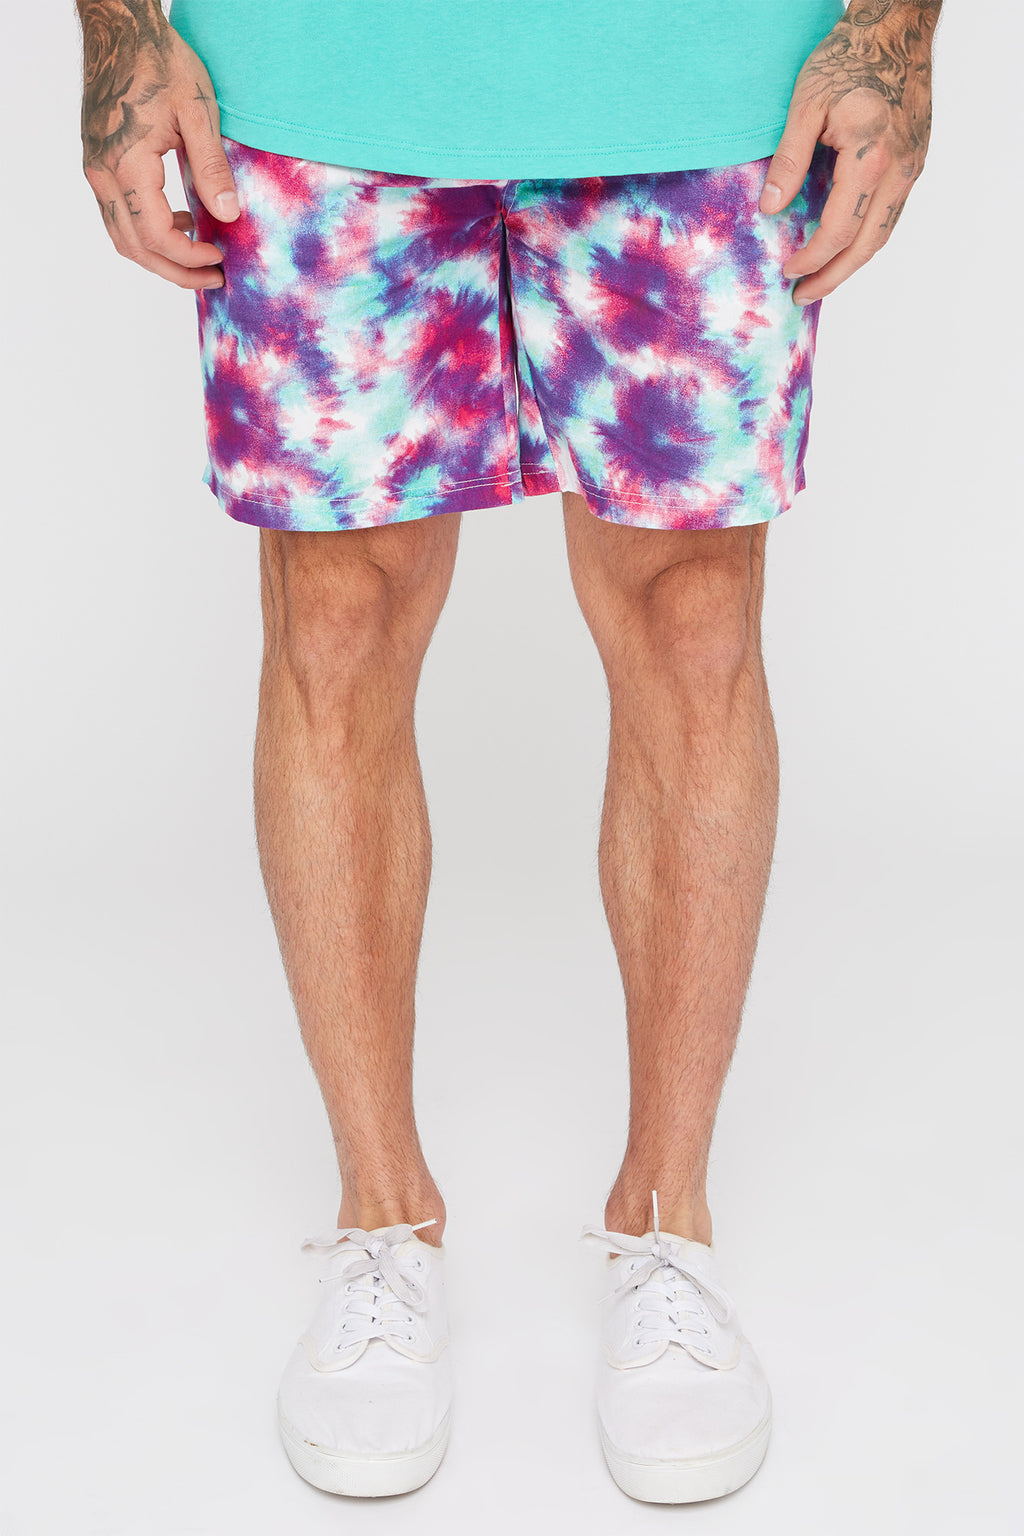 West49 Mens Tie-Dye Print Pull-On Shorts